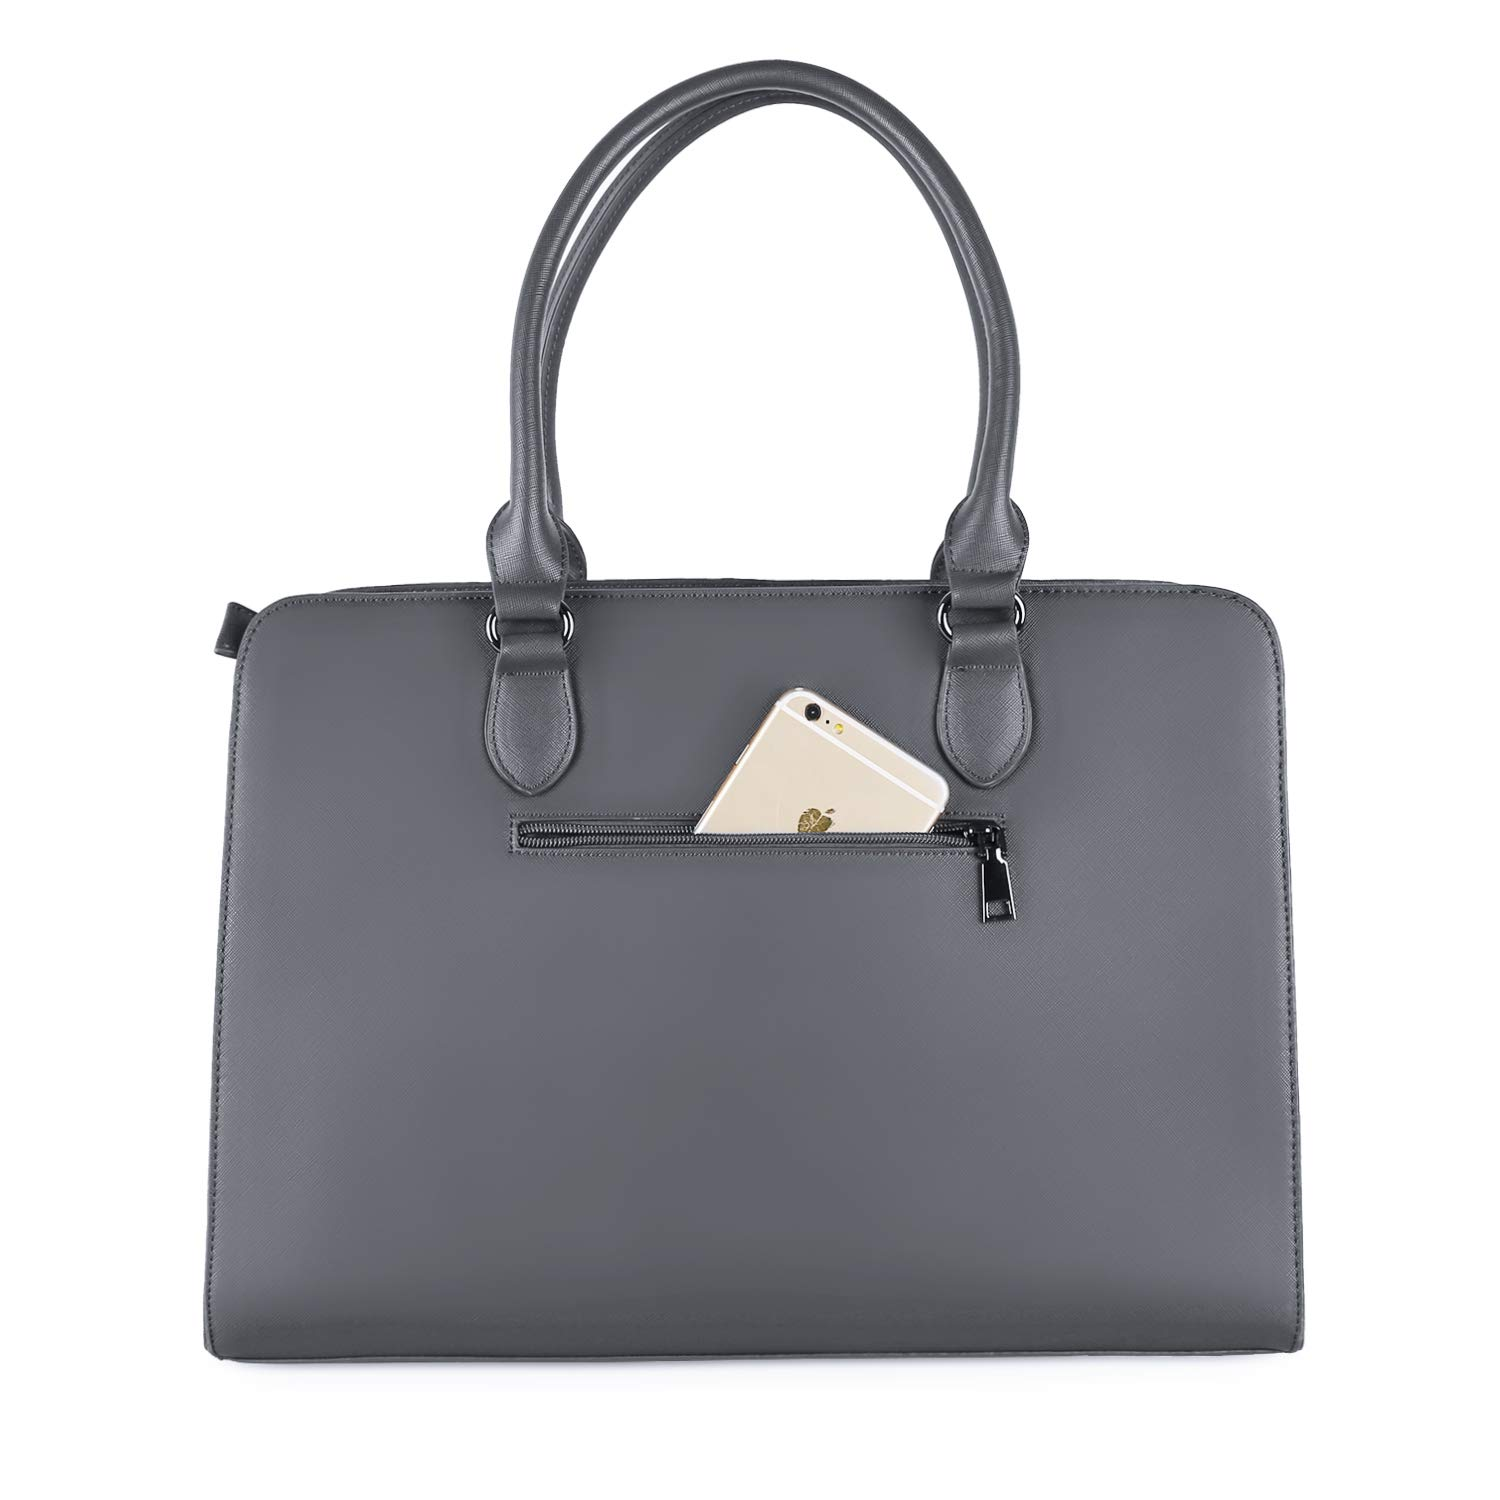 Premium PU Leather Large Capacity with 3 Layer Compartments Business Work Travel Shoulder Briefcase Handbag Space Gray MOSISO Laptop Tote Bag for Women Up to 15.6 Inch